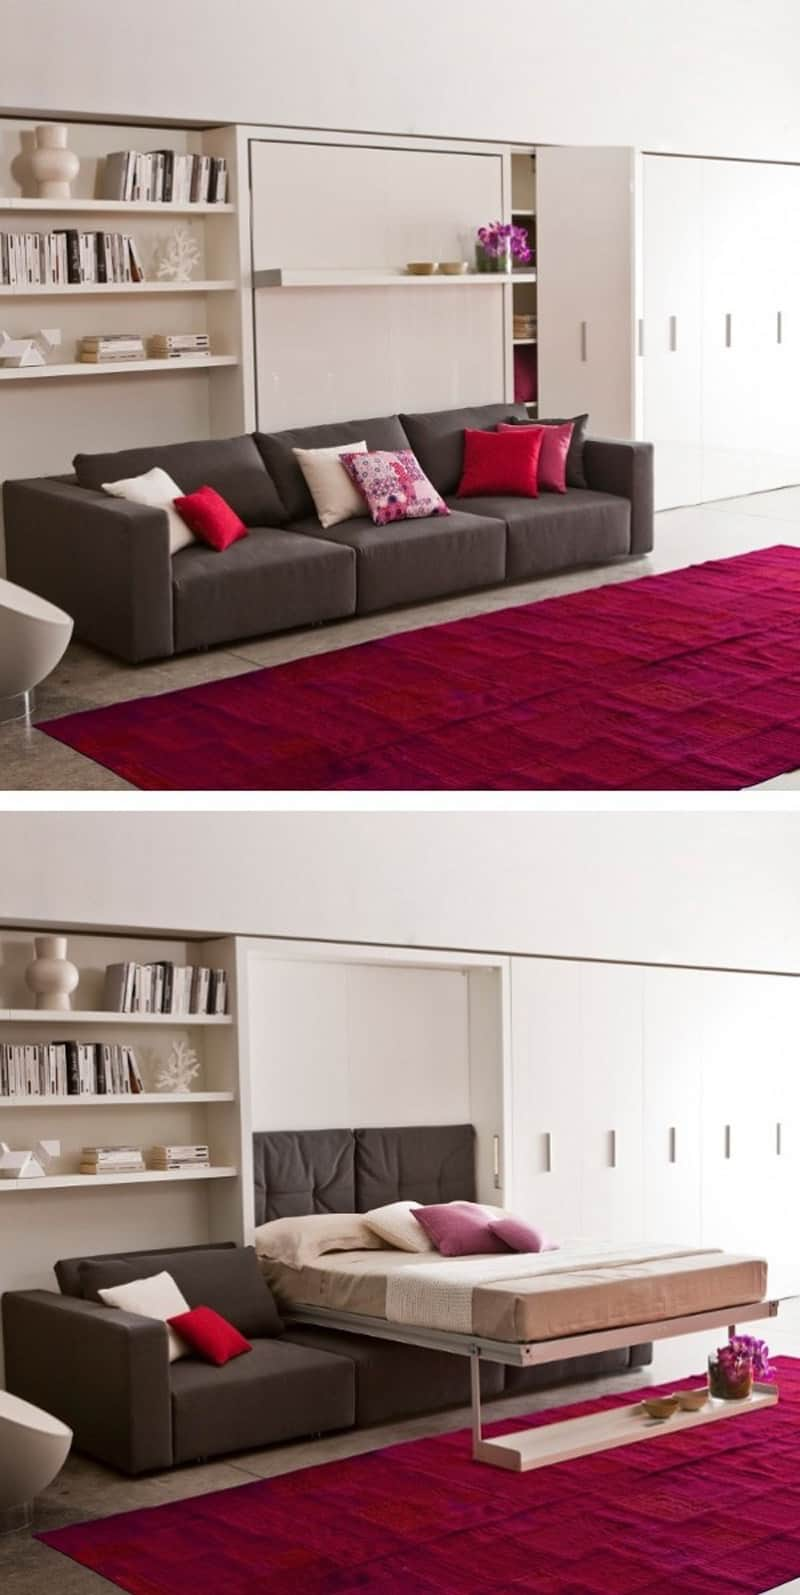 designrulz- Space Saving Beds and Bedrooms (15)